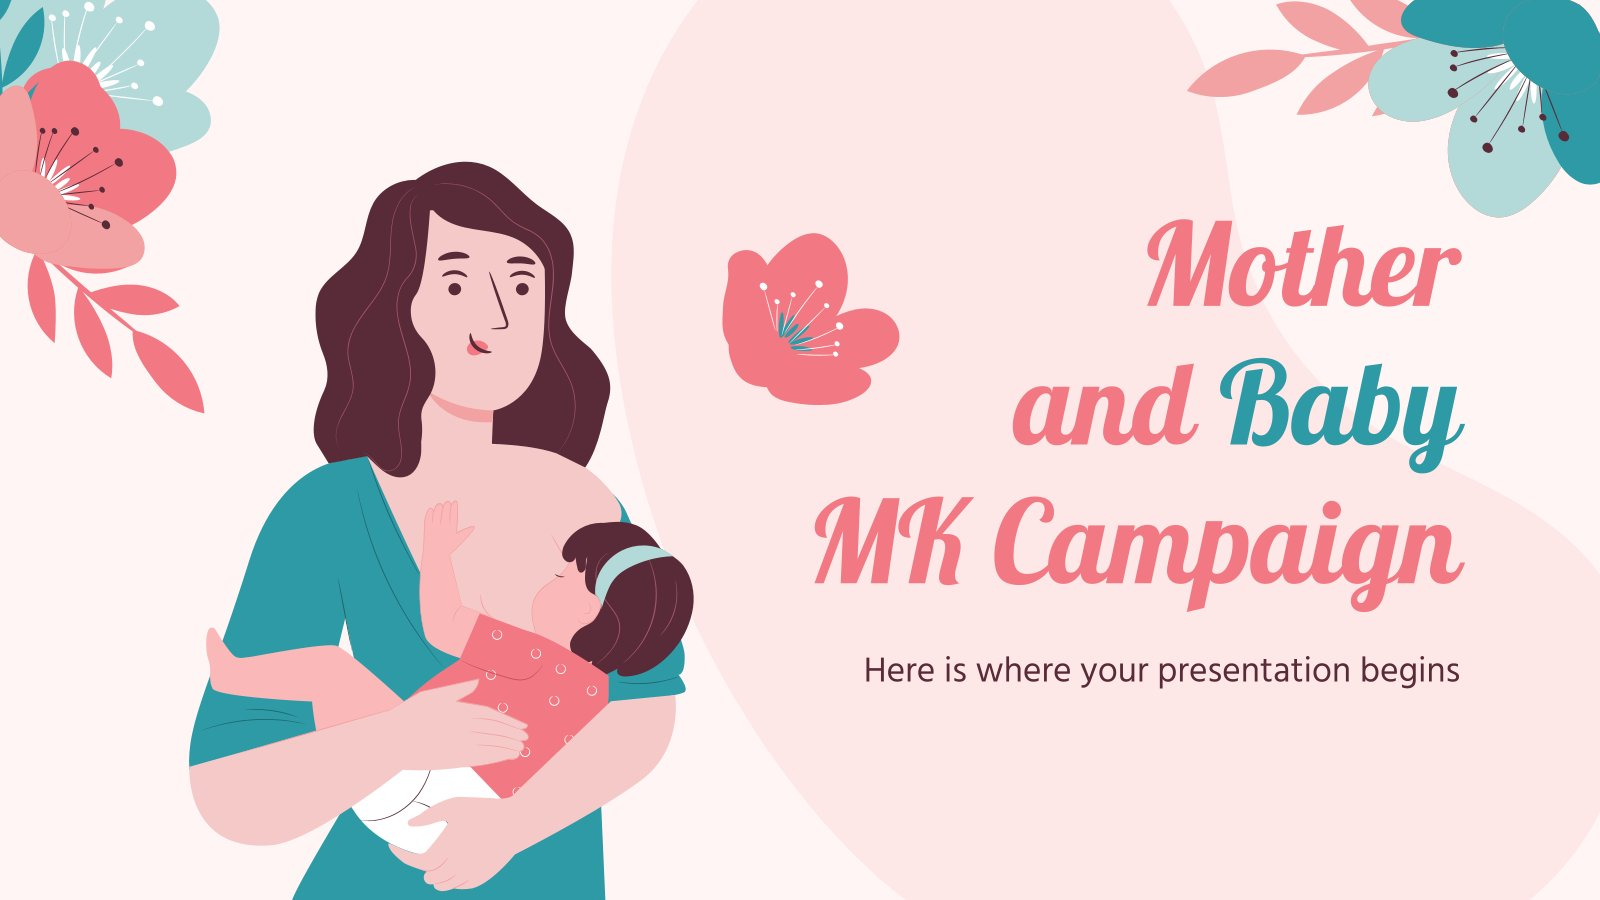 Mother and Baby MK Campaign presentation template